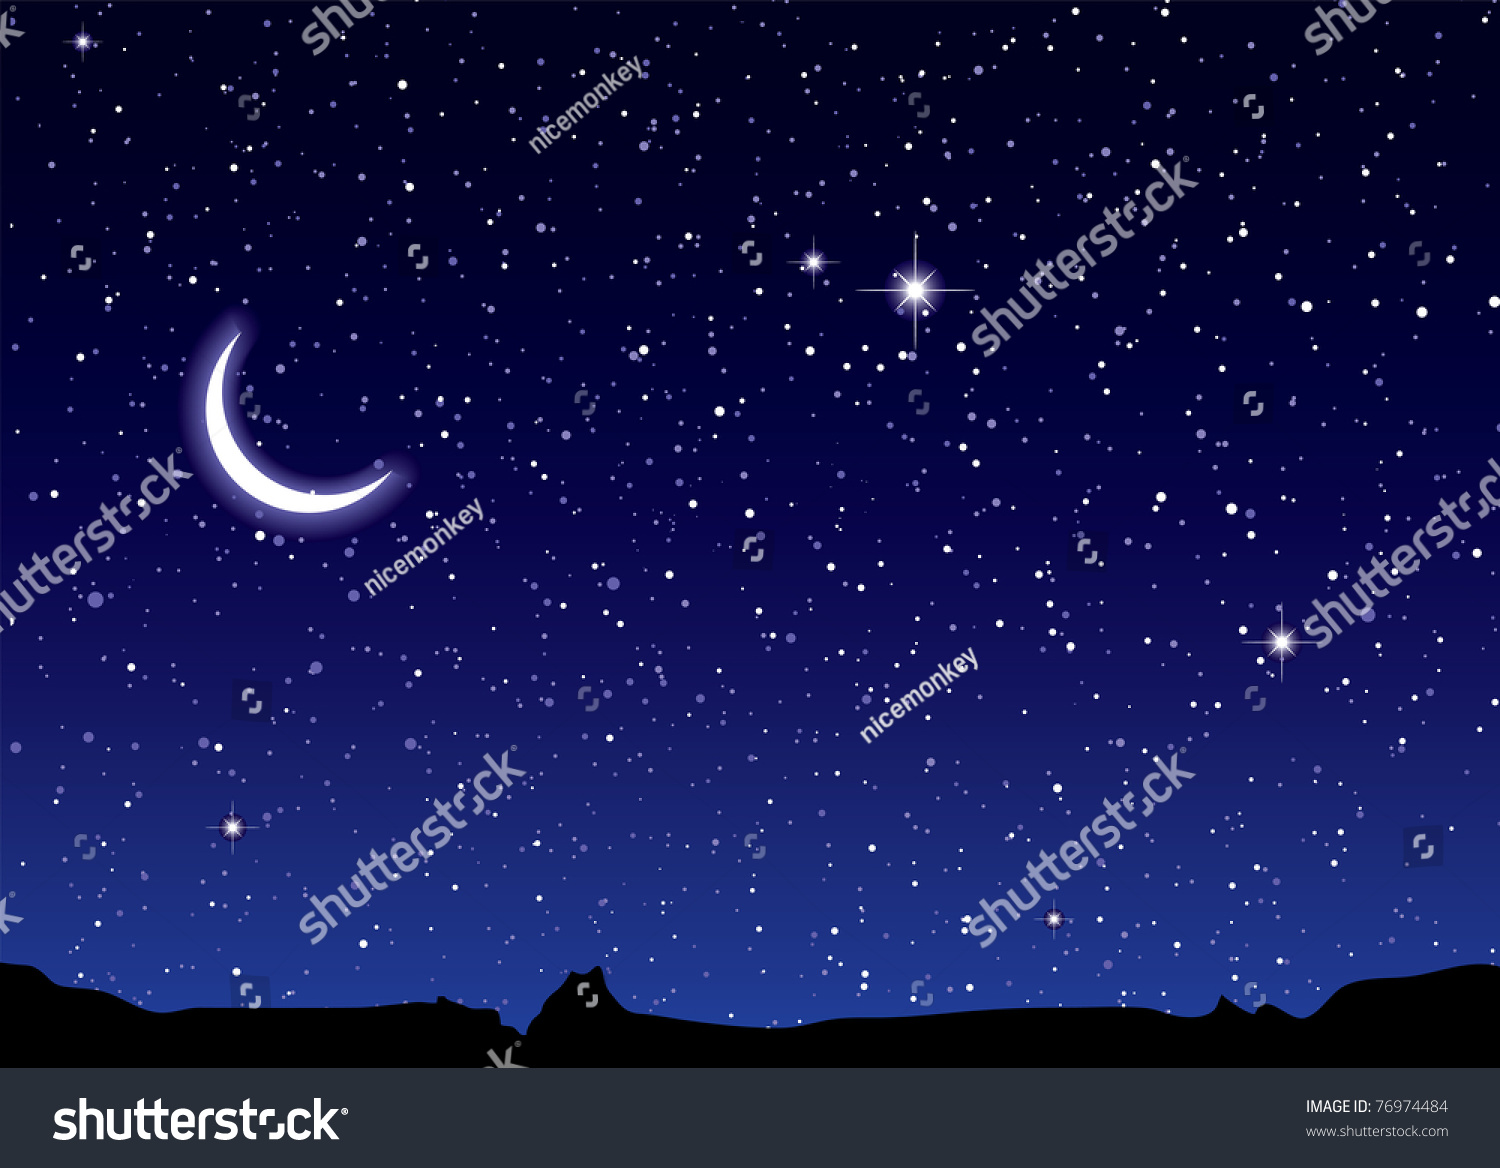 Space landscape silhouette mountains crescent moon stock for Space landscape